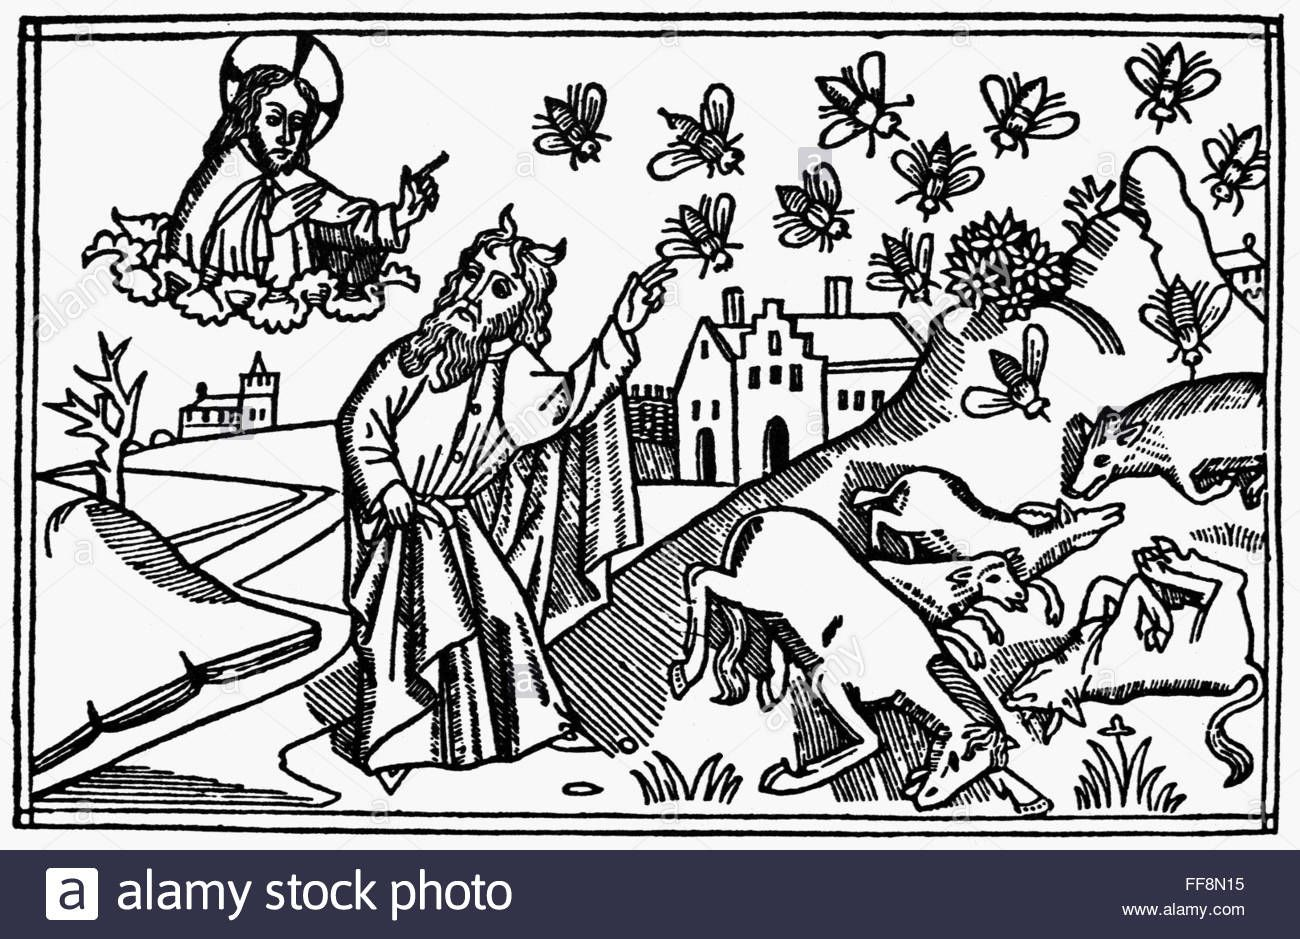 Plague Of Flies Nthe Plague Of Flies Exodus 8 20 24 Woodcut